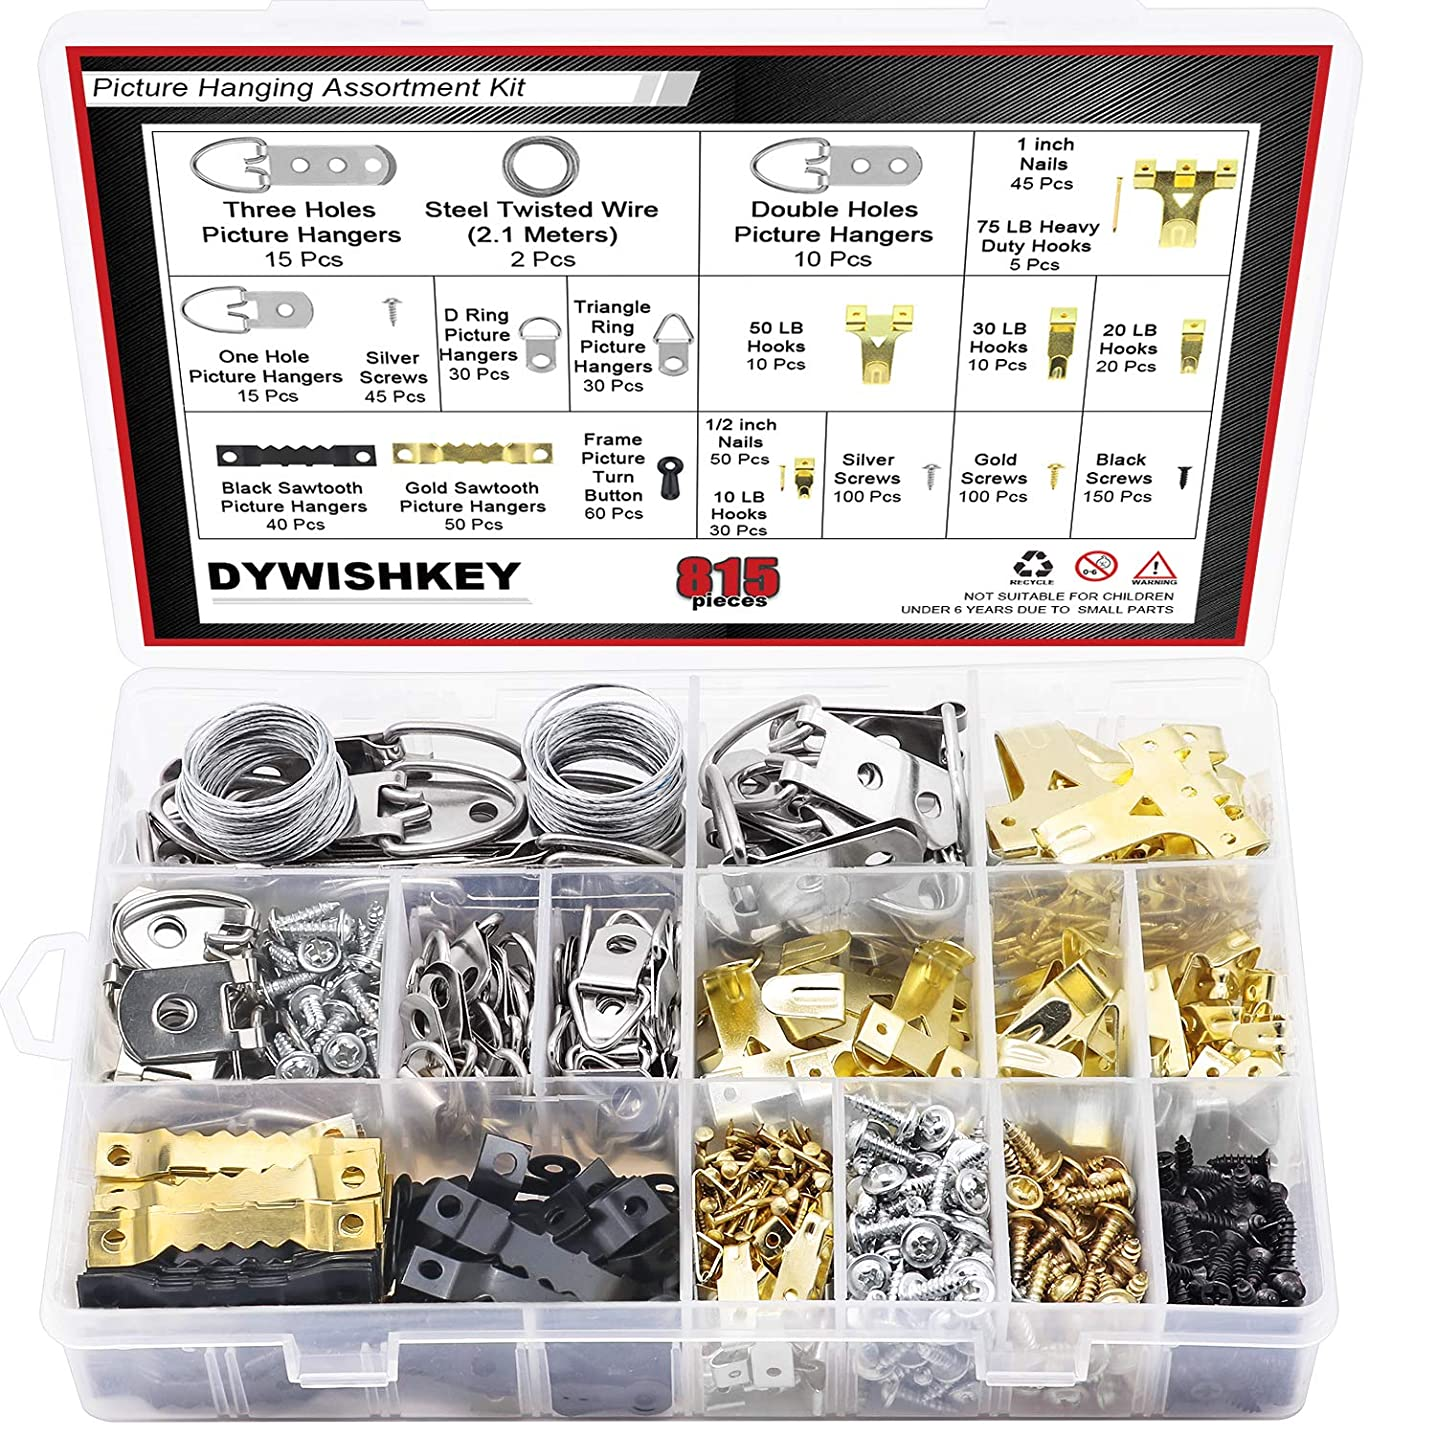 DYWISHKEY Picture Hanging Kit, 815 PCS Heavy Duty Assorted Picture Hangers Hooks Nails and Screws, Picture Hangers Assortment Kit for Wall Mounting